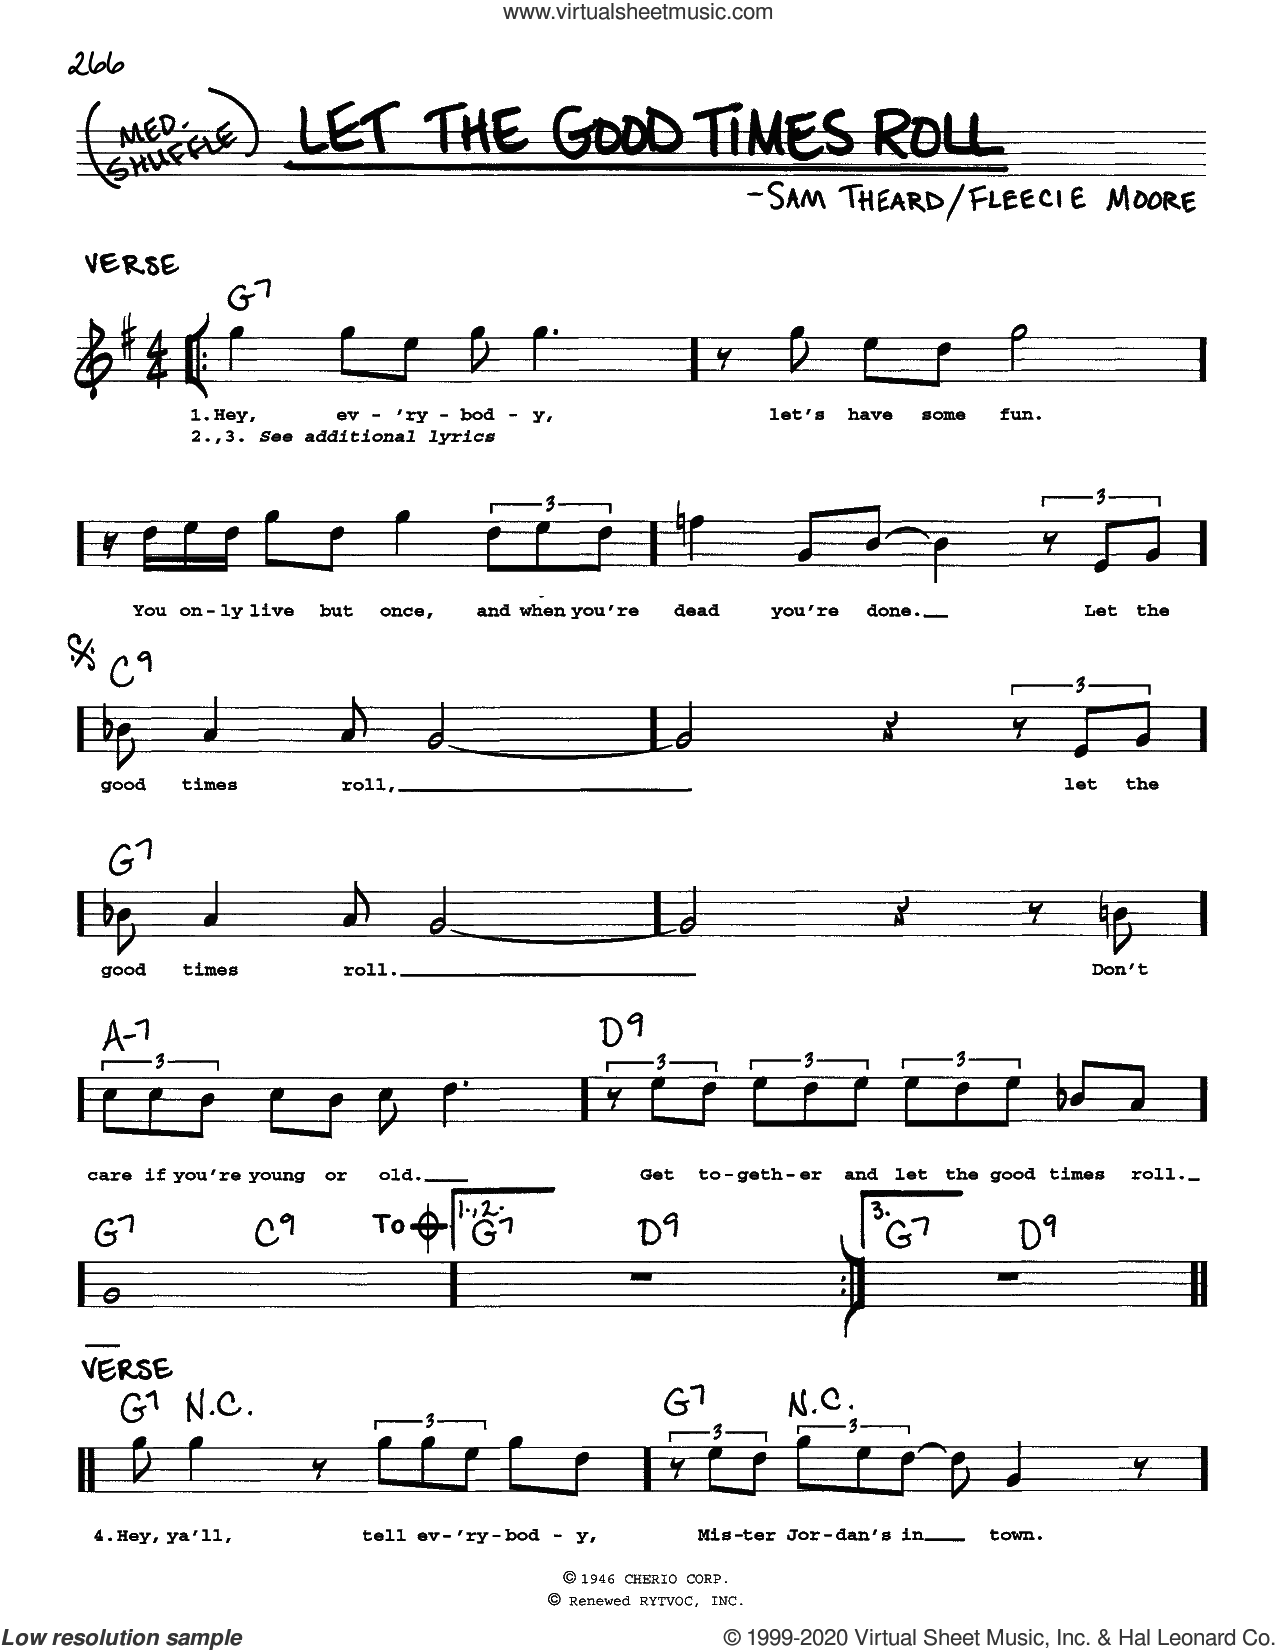 Let The Good Times Roll sheet music for voice and other instruments (real book) by B.B. King, Fleecie Moore and Sam Theard, intermediate skill level